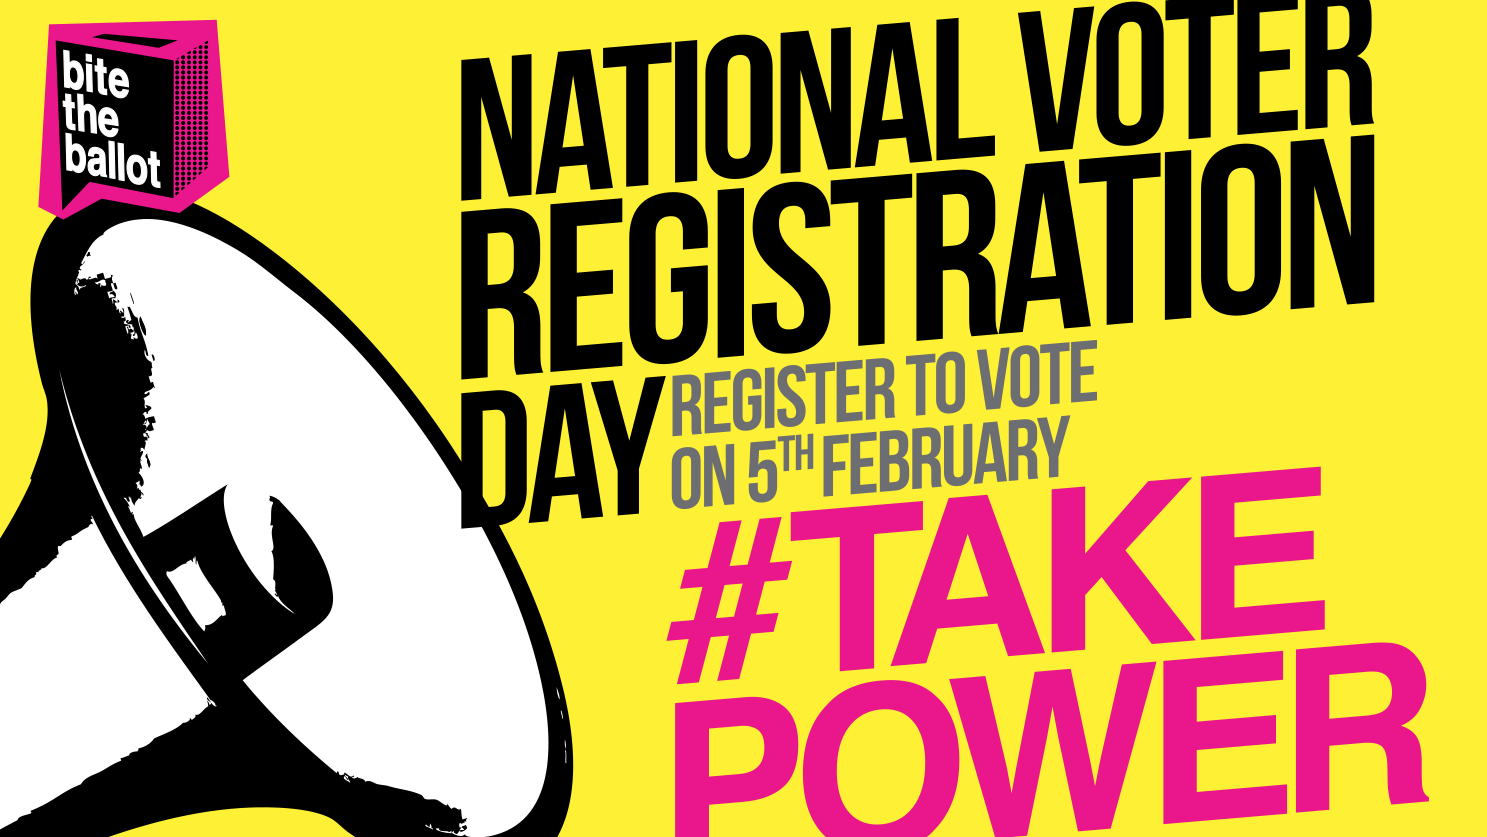 Date to register to vote in Australia